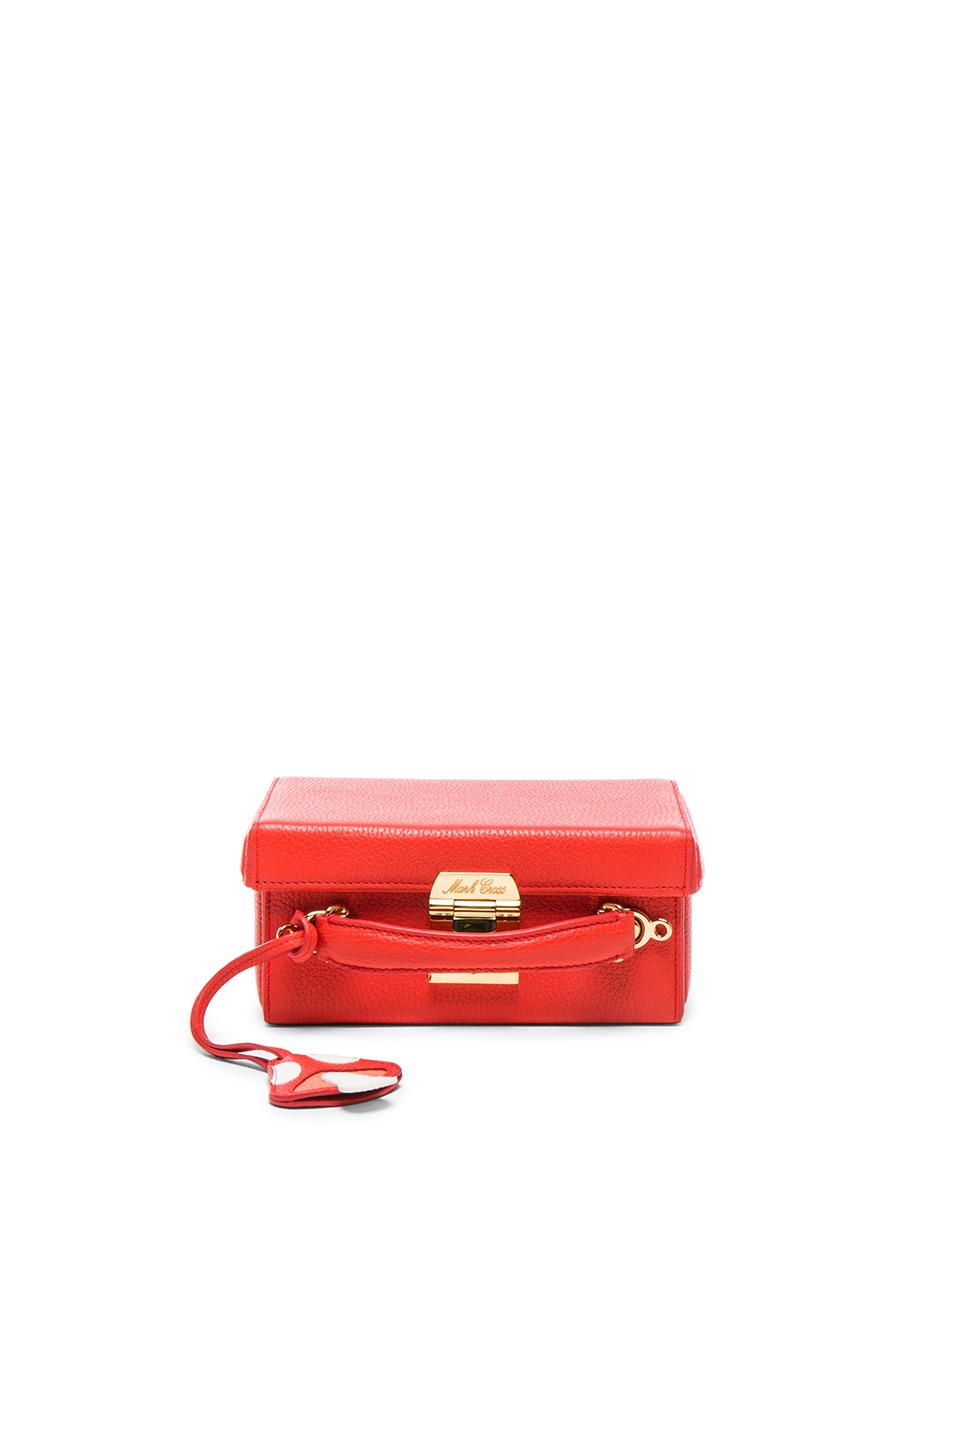 Image 1 of Mark Cross Grace Small Box Bag with Mushroom Charm in Bright Red Pebble